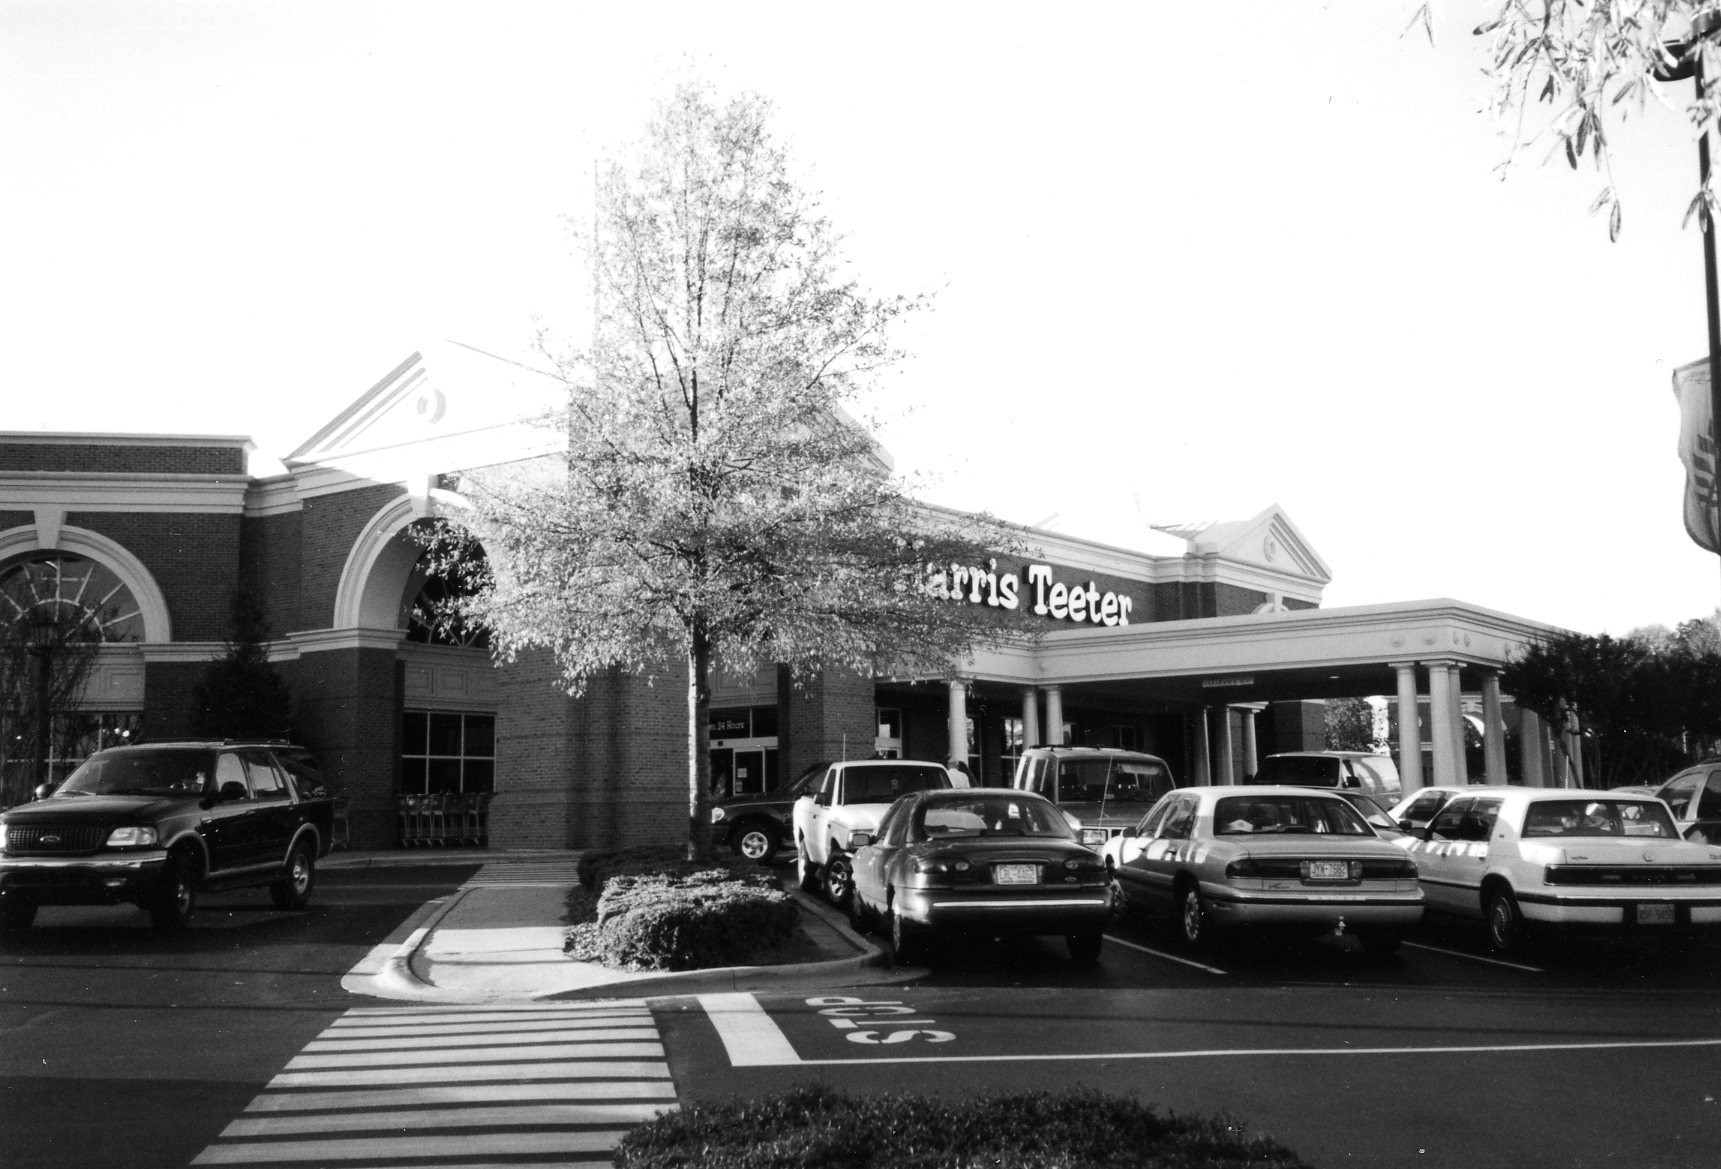 Harris Teeter at Morrocroft | Charlotte Mecklenburg Story